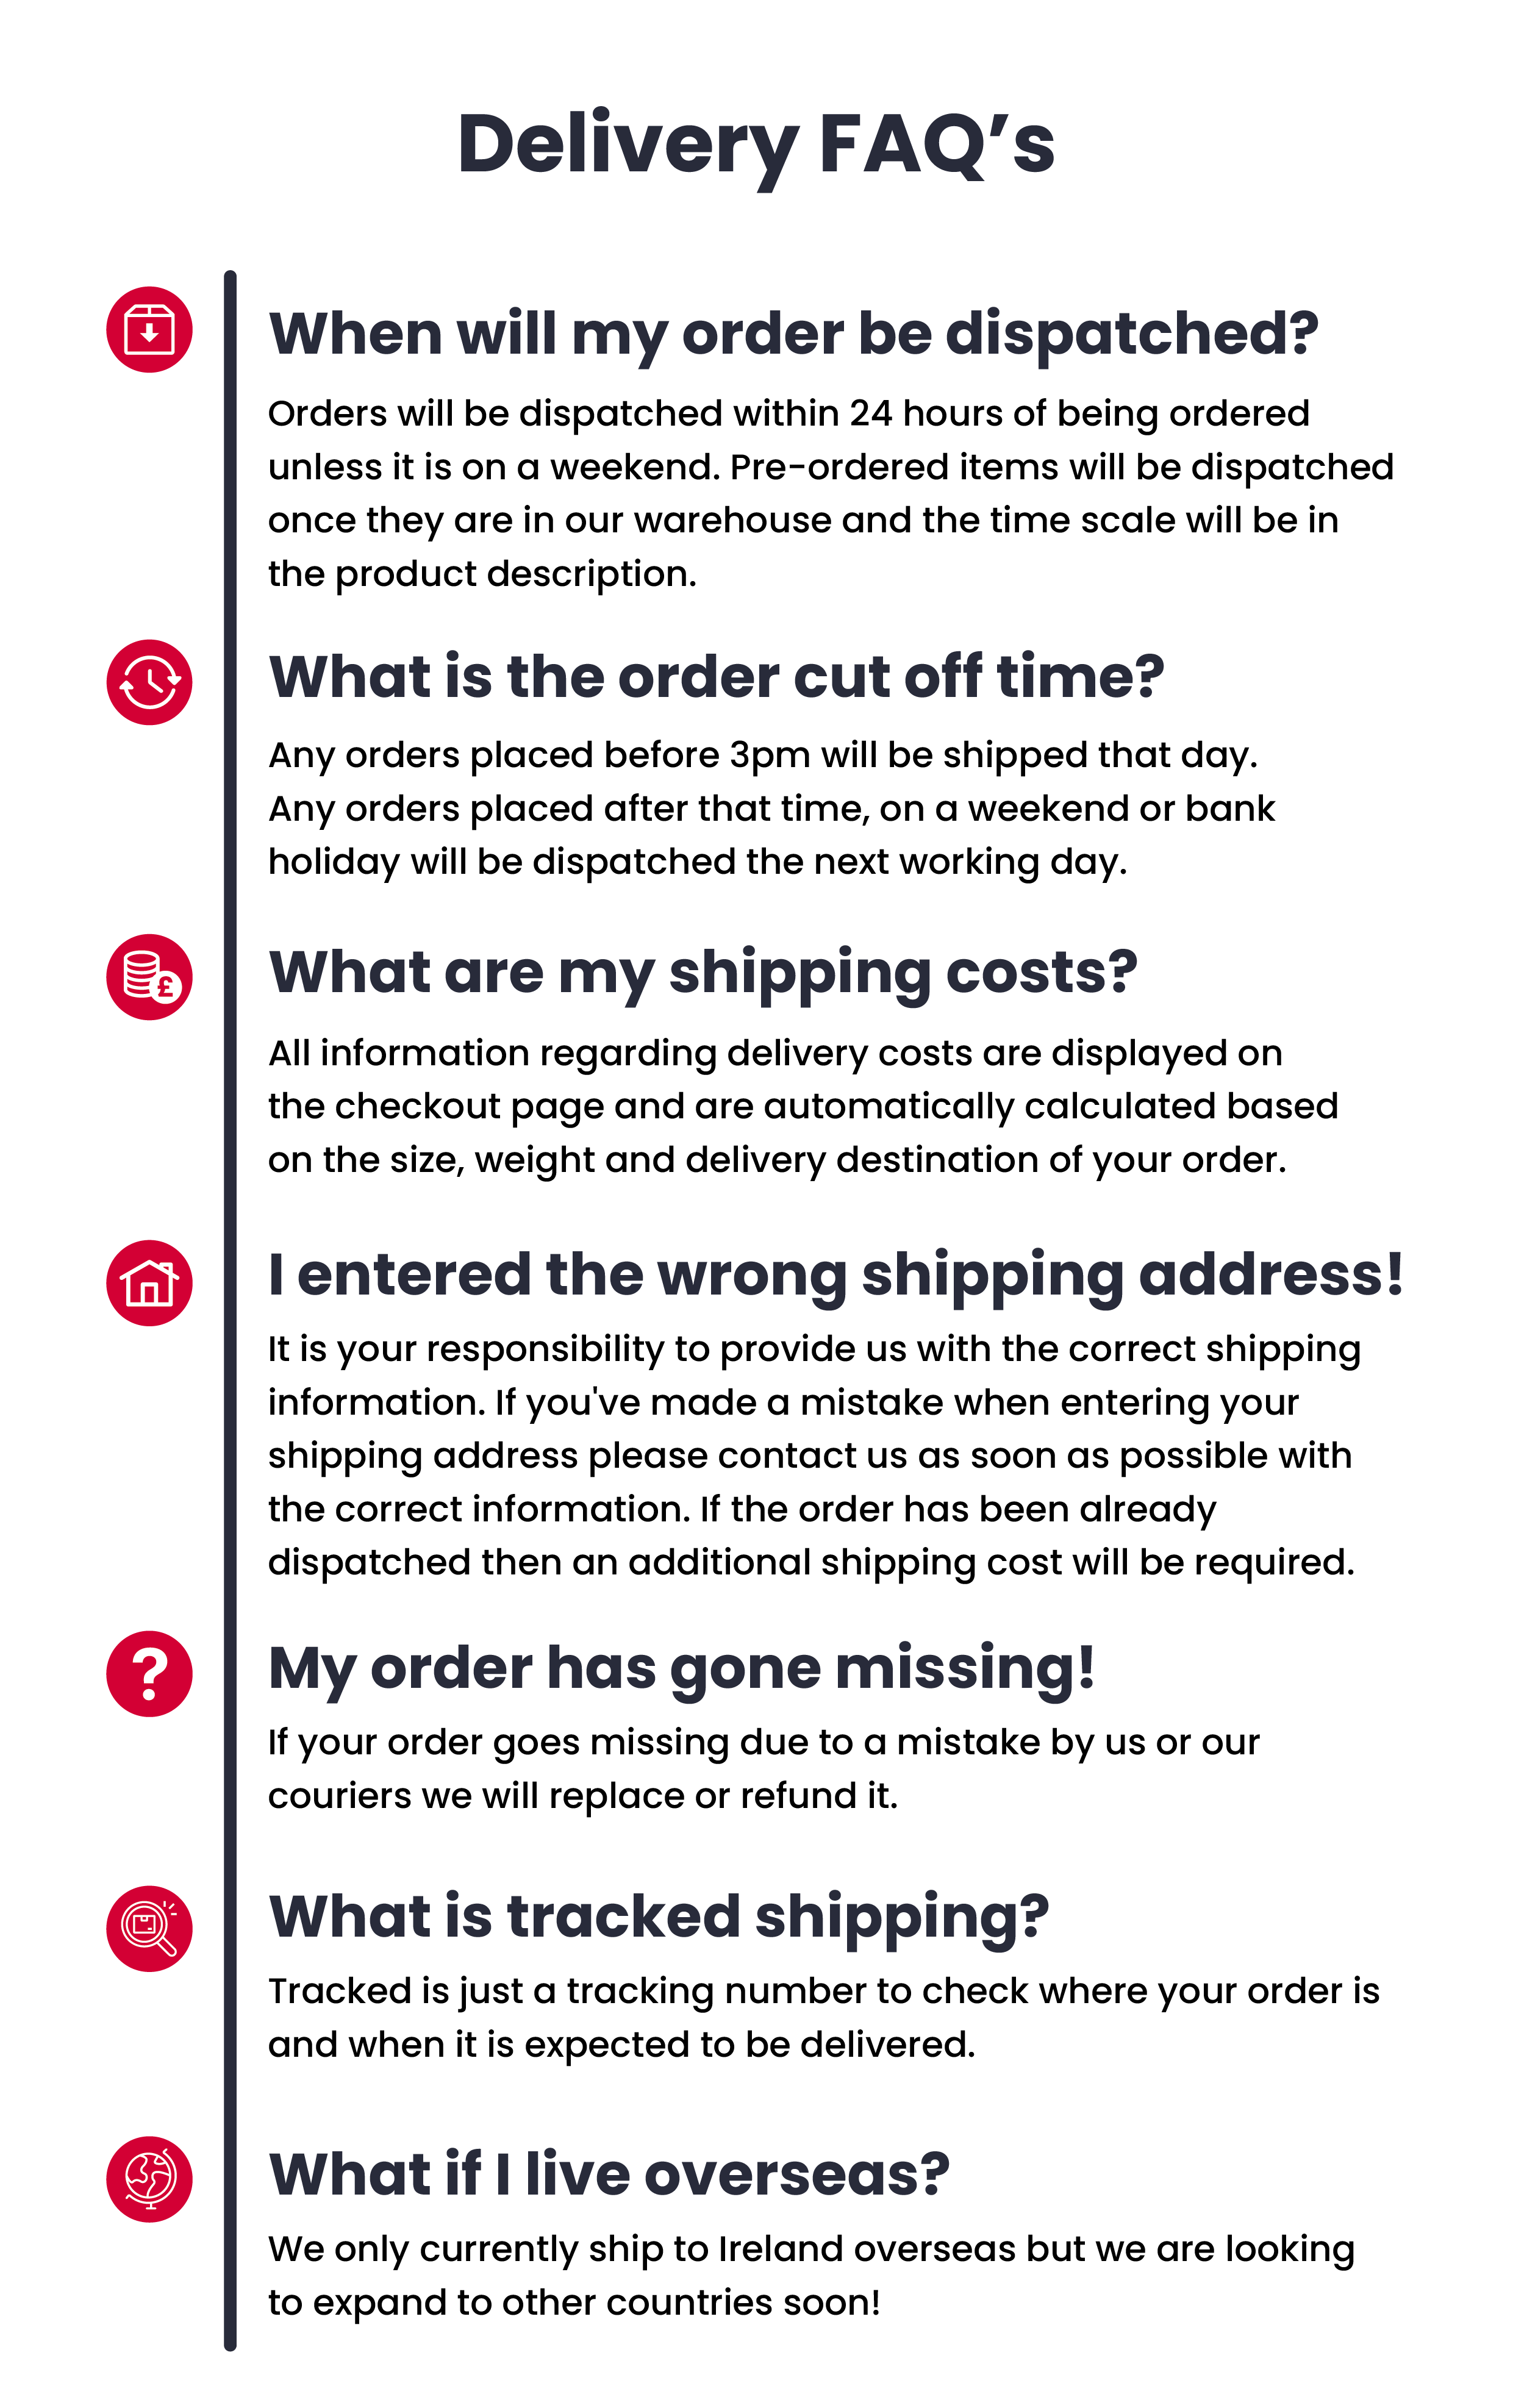 Team RH delivery FaQ infographic